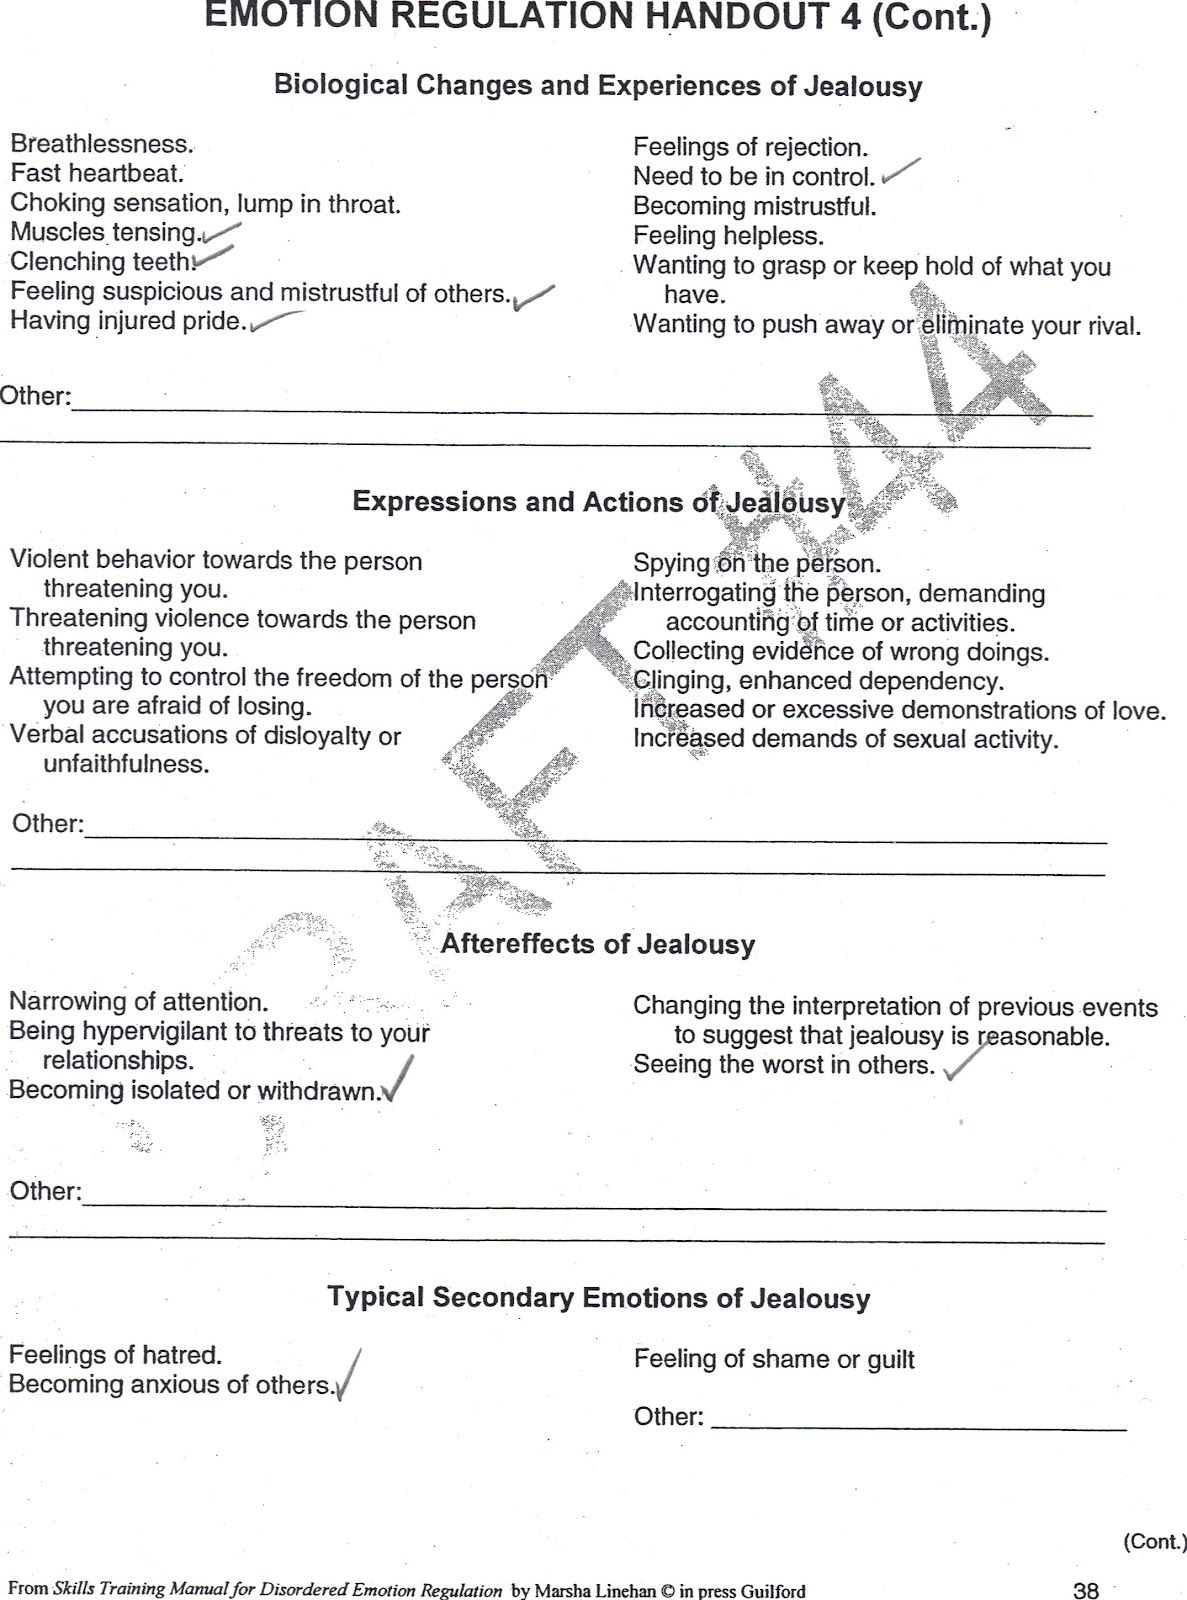 Worksheets Identifying Emotions Worksheet jealousy worksheet healingfrombpd org emotion regulation handout 4 1187